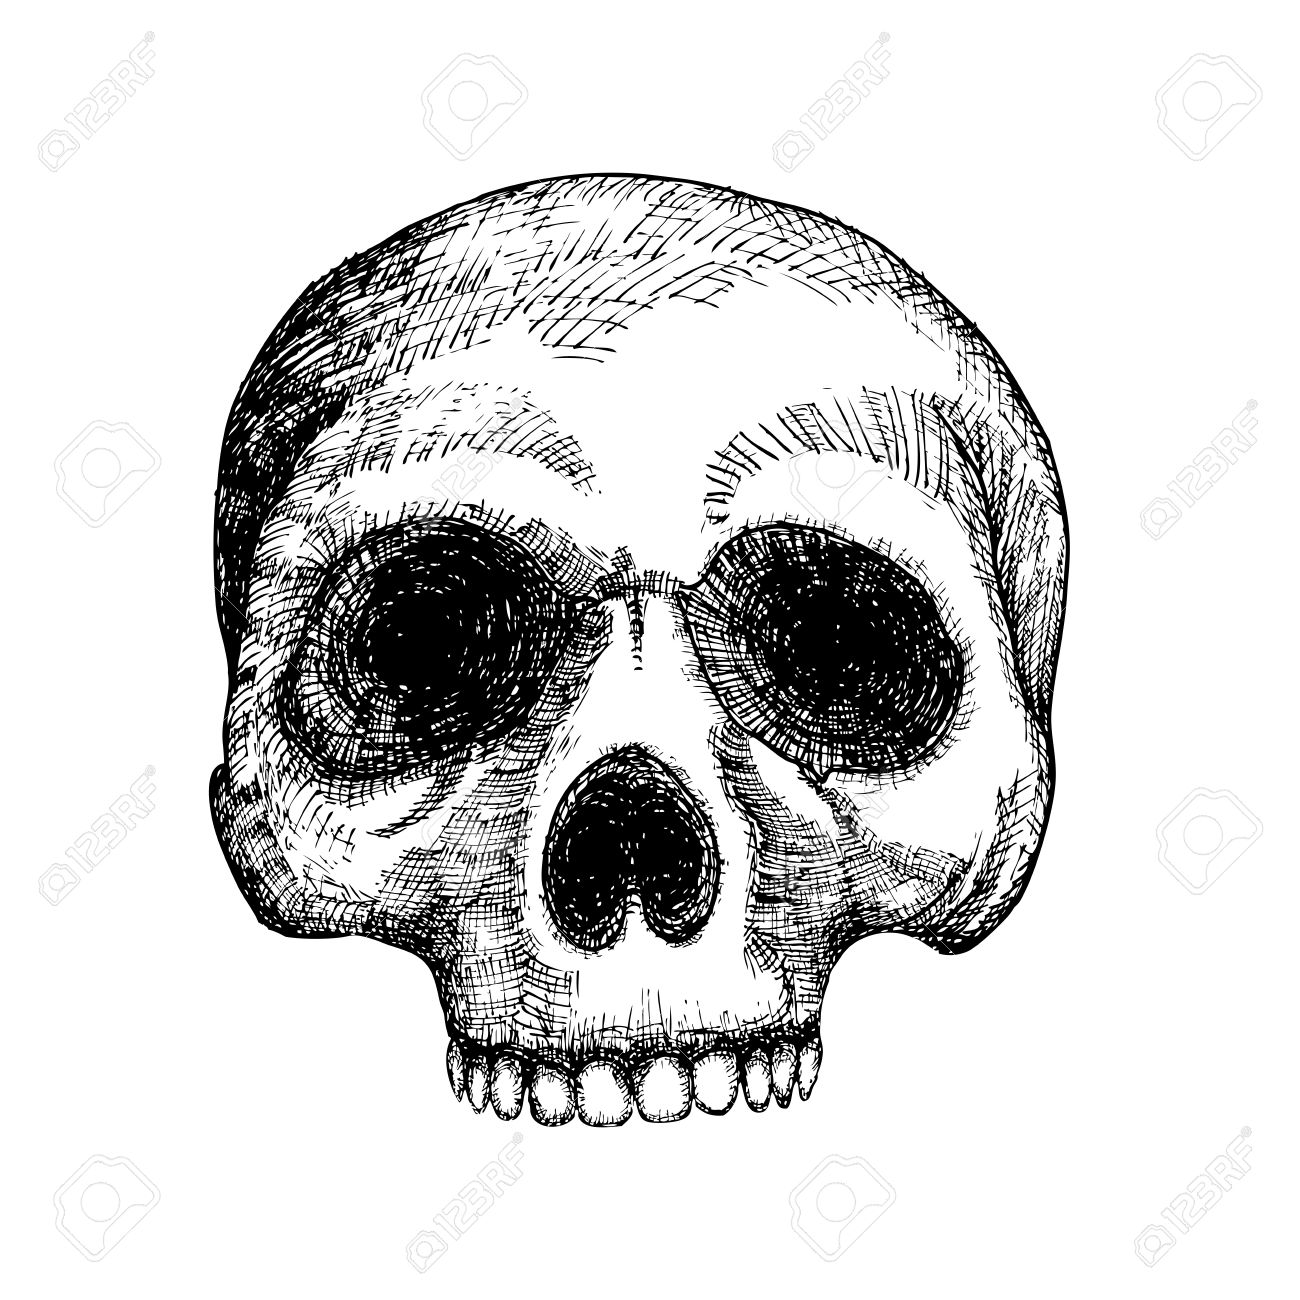 Hand drawing skull human skull sketch black and white illustration